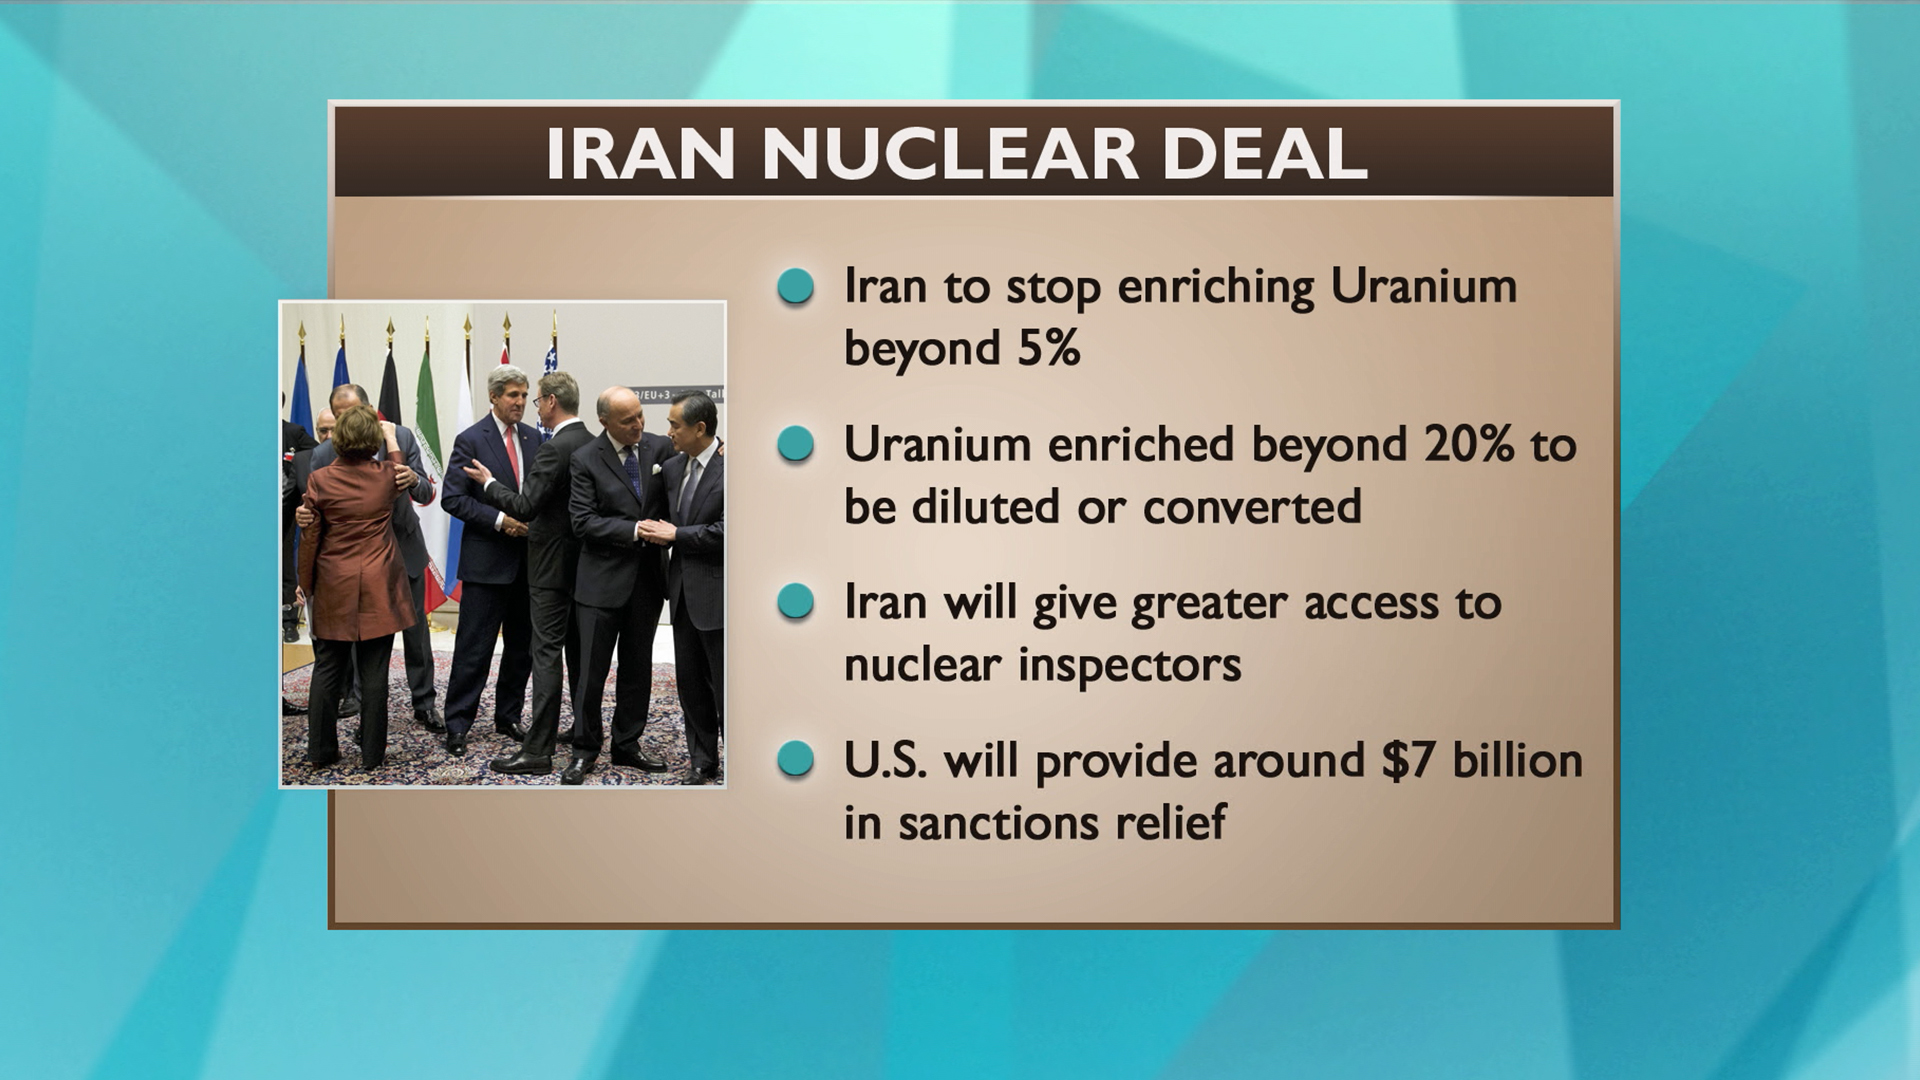 Key aspects of Iran deal